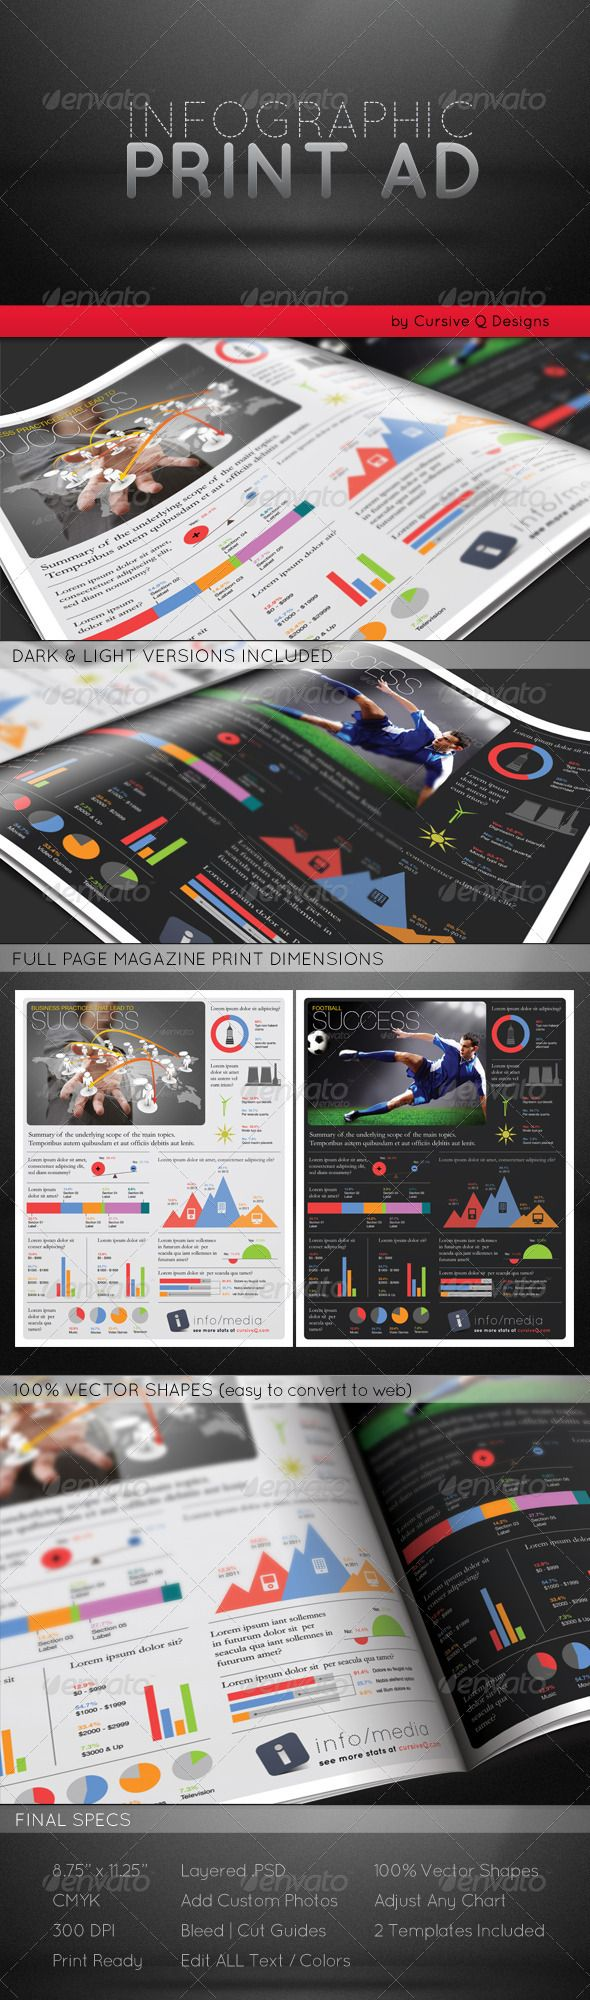 infographic print ad template other colors and be unique infographic print ad template here is an unique way to present your next magazine advertisement